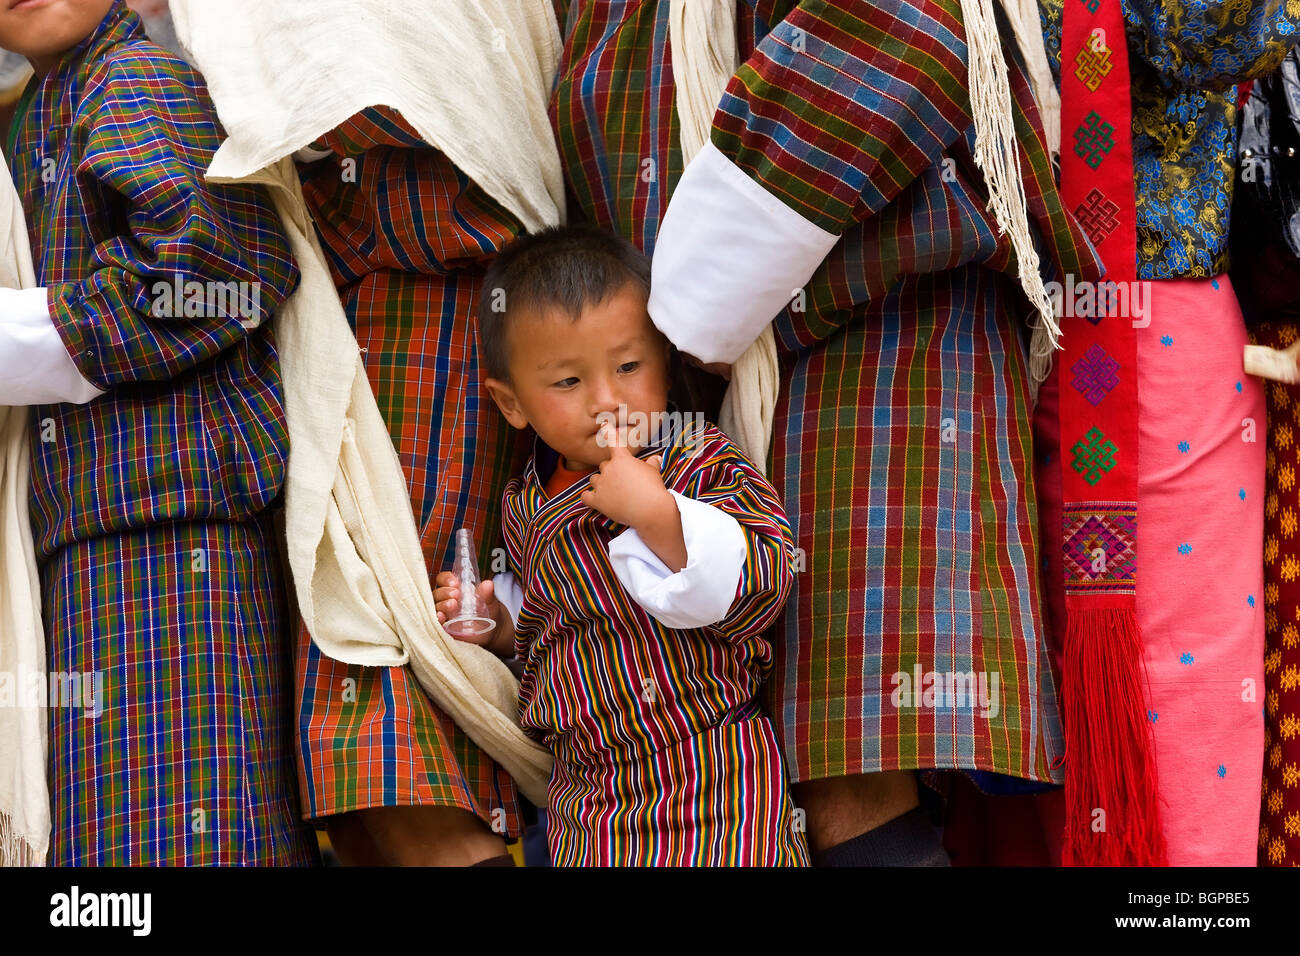 People queuing to be blessed, Festival, Trashichhoe Dzong (monastery), Thimpu, Bhutan - Stock Image